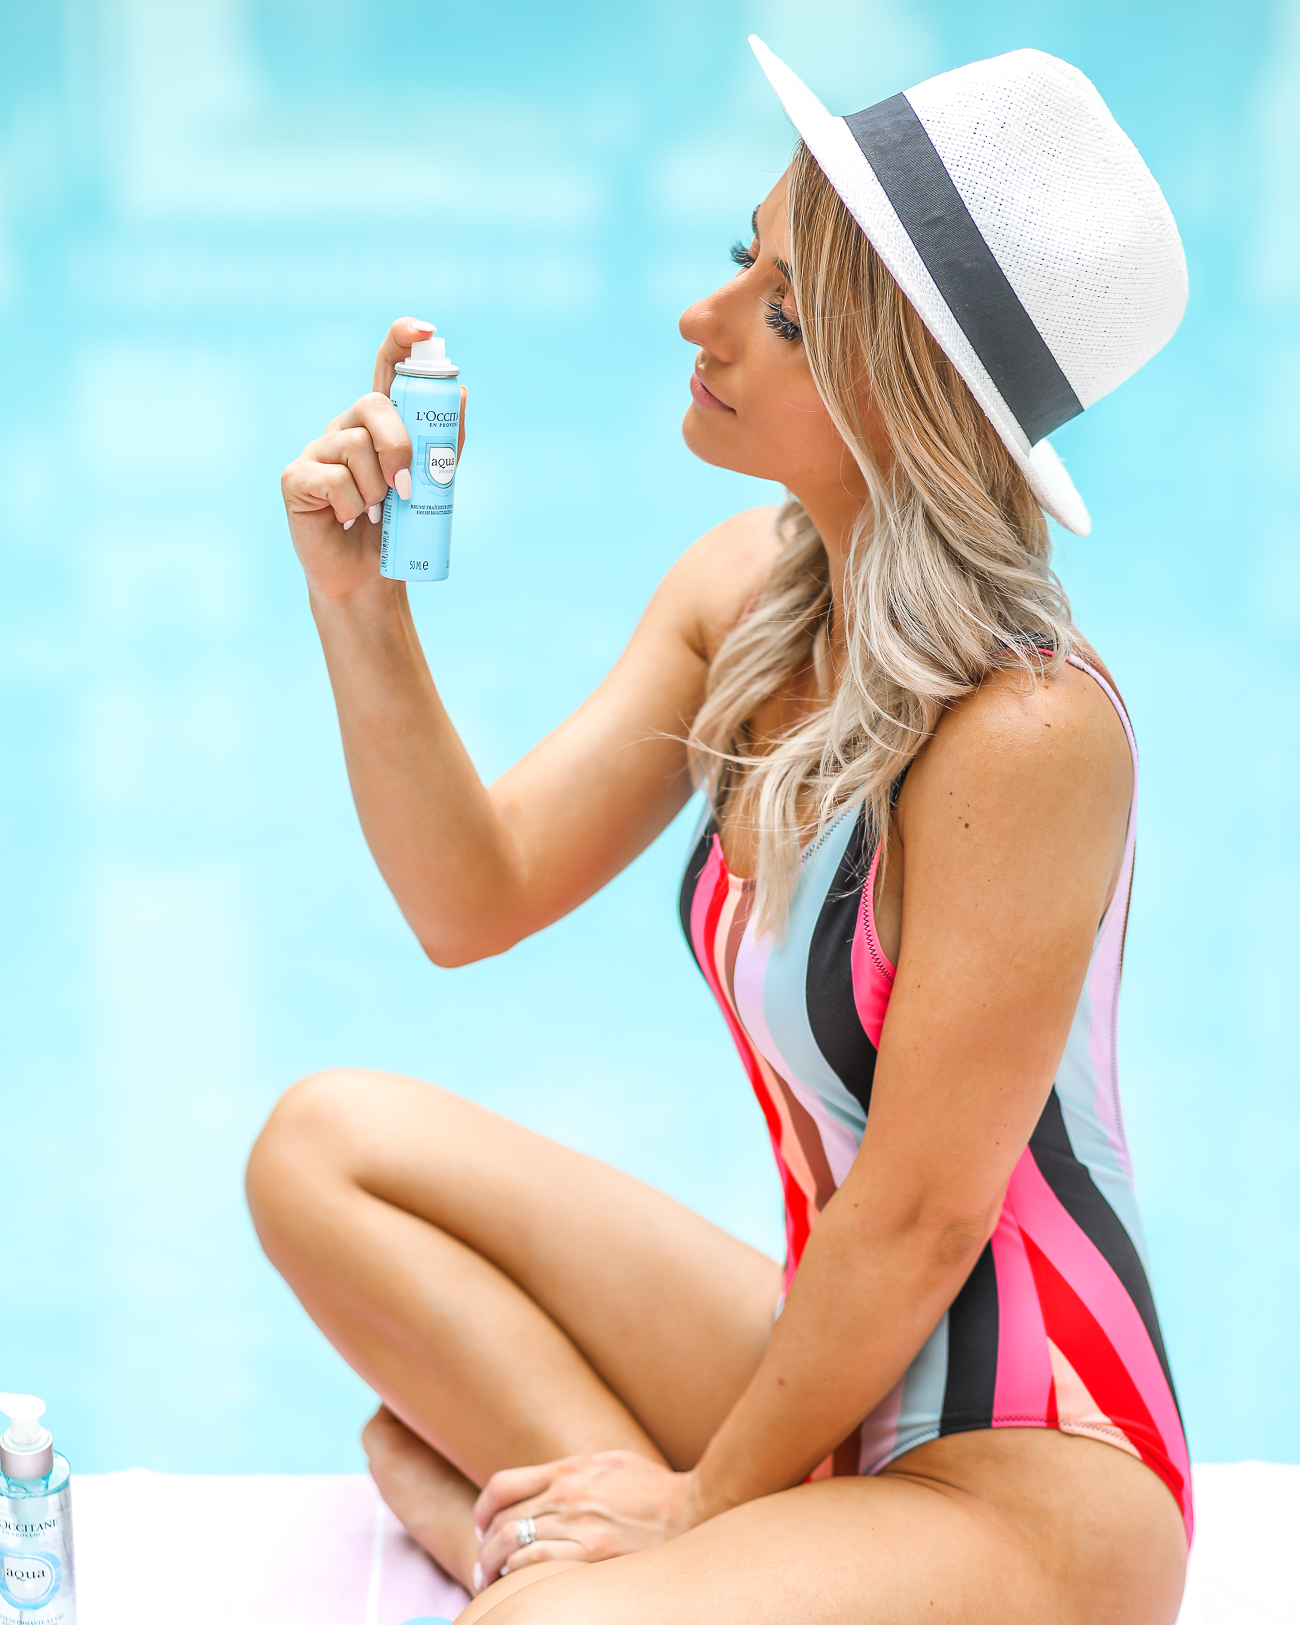 L'Occitane Aqua Réotier Skin Care Collection Easy Summer skincare Solid & Striped One Piece Tank Swimsuit Hat Attach Straw Tote